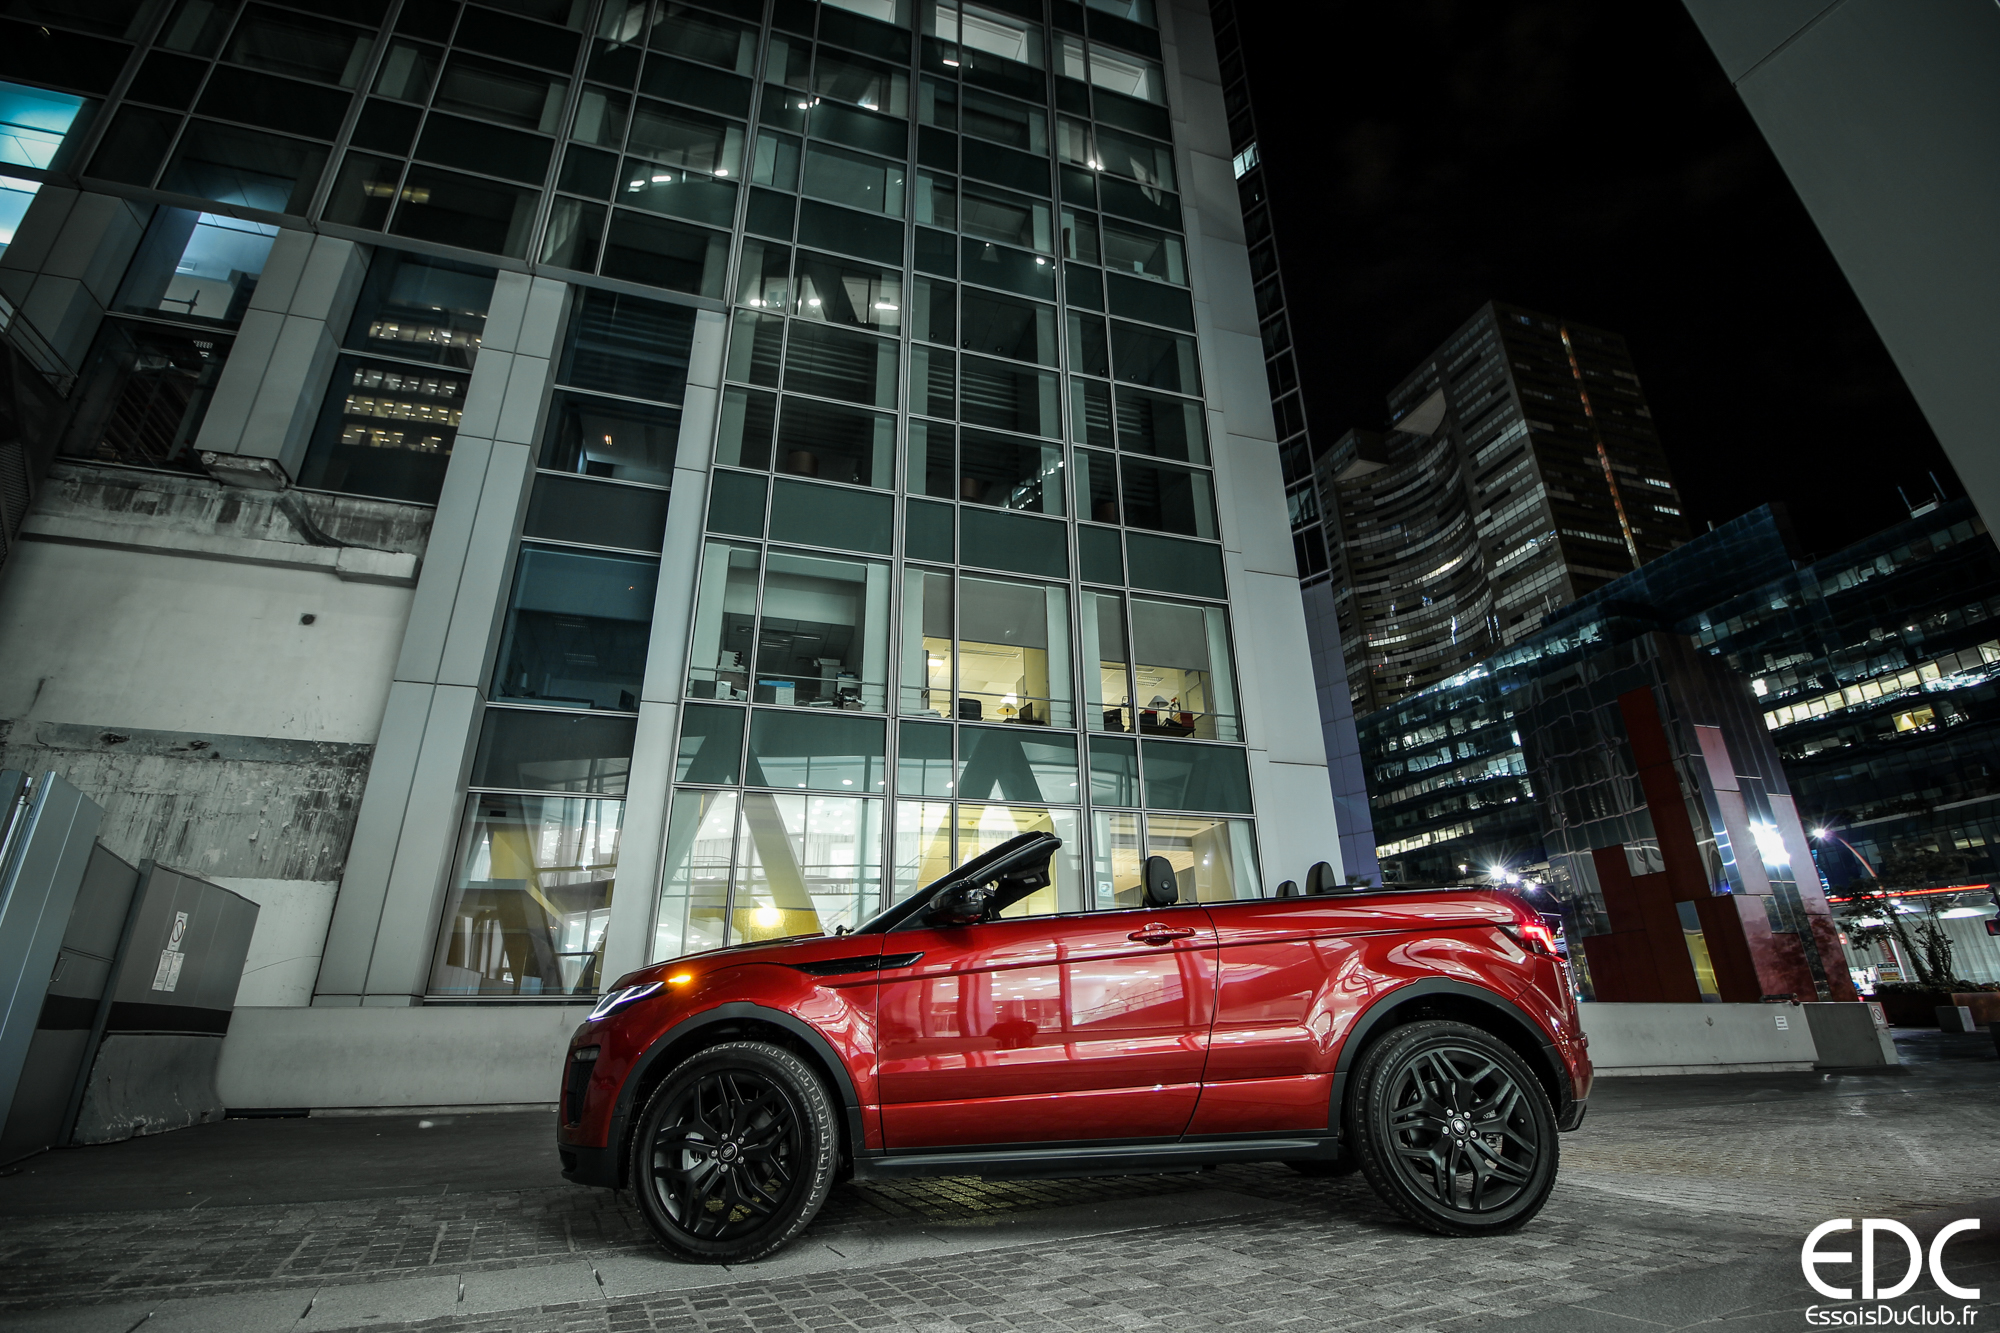 Range Rover Evoque carbiolet Firenze Red